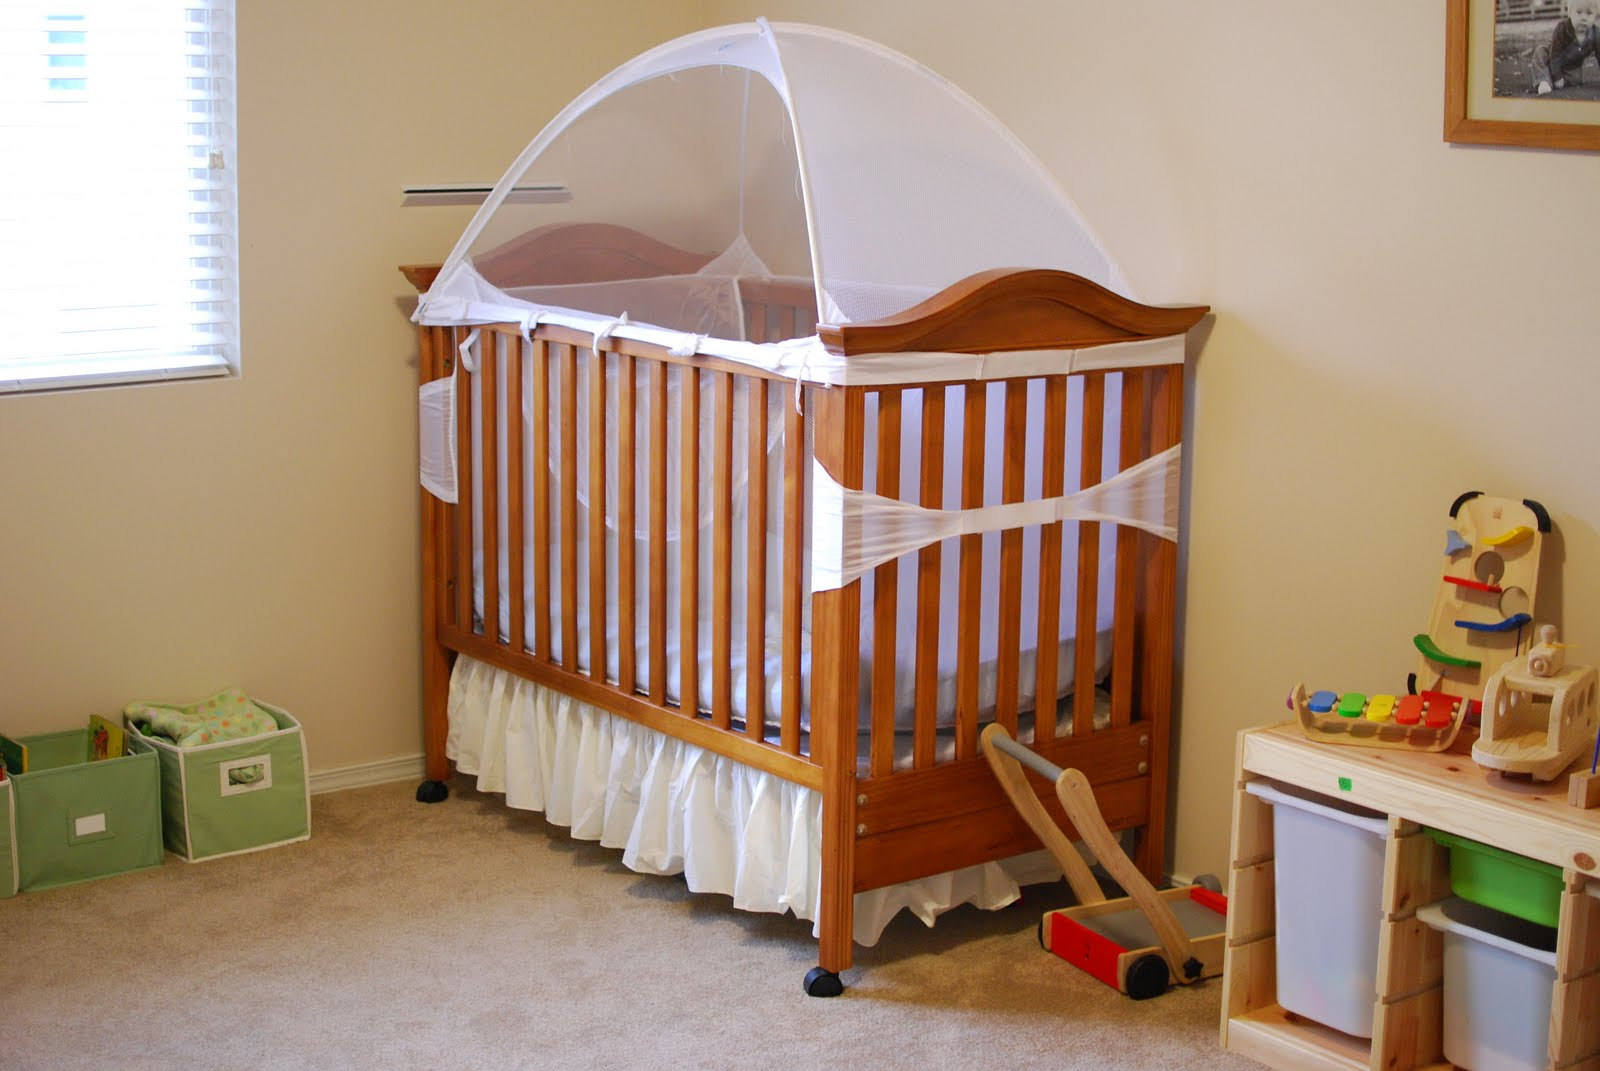 Crib tents for babies - We Don T Usually Put Toys In The Kids Rooms But This House Has Enormous Bedrooms Each Of The Kids Has A Few Small Things In Their Room And It S Really